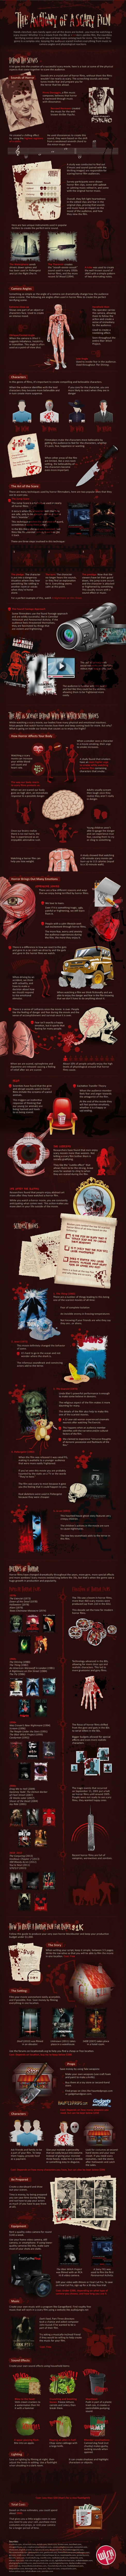 Scary Film Infographic